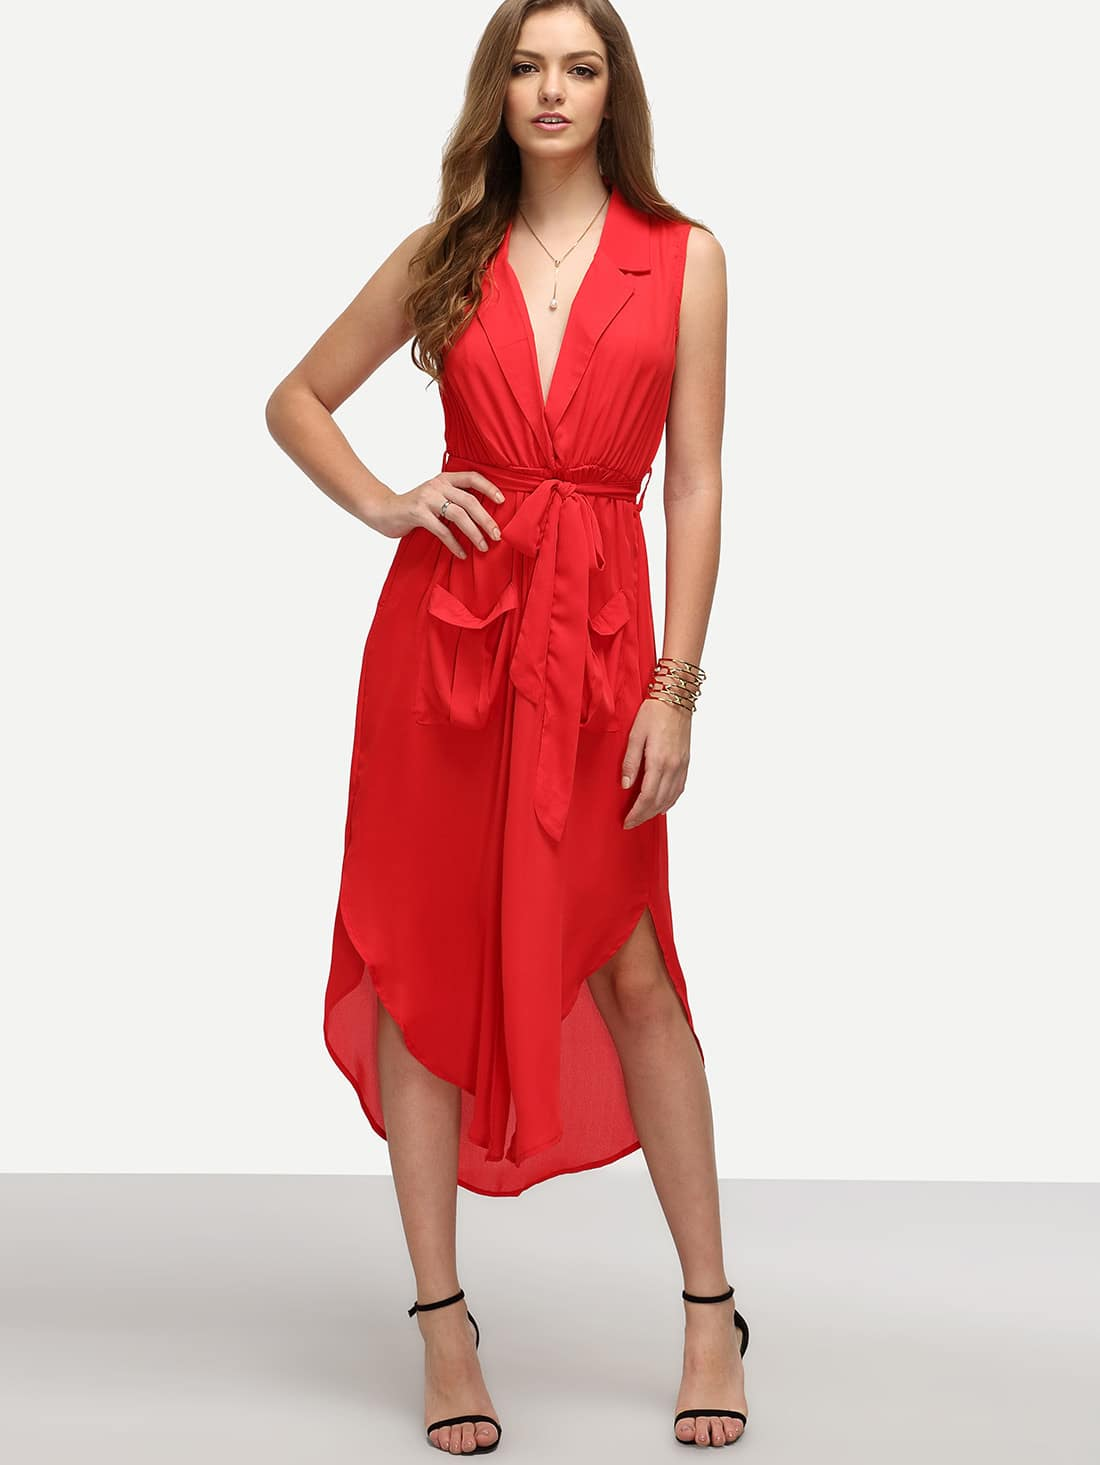 Red Lapel Self-tie HIgh Low Chiffon Dress With Pockets dress160608307